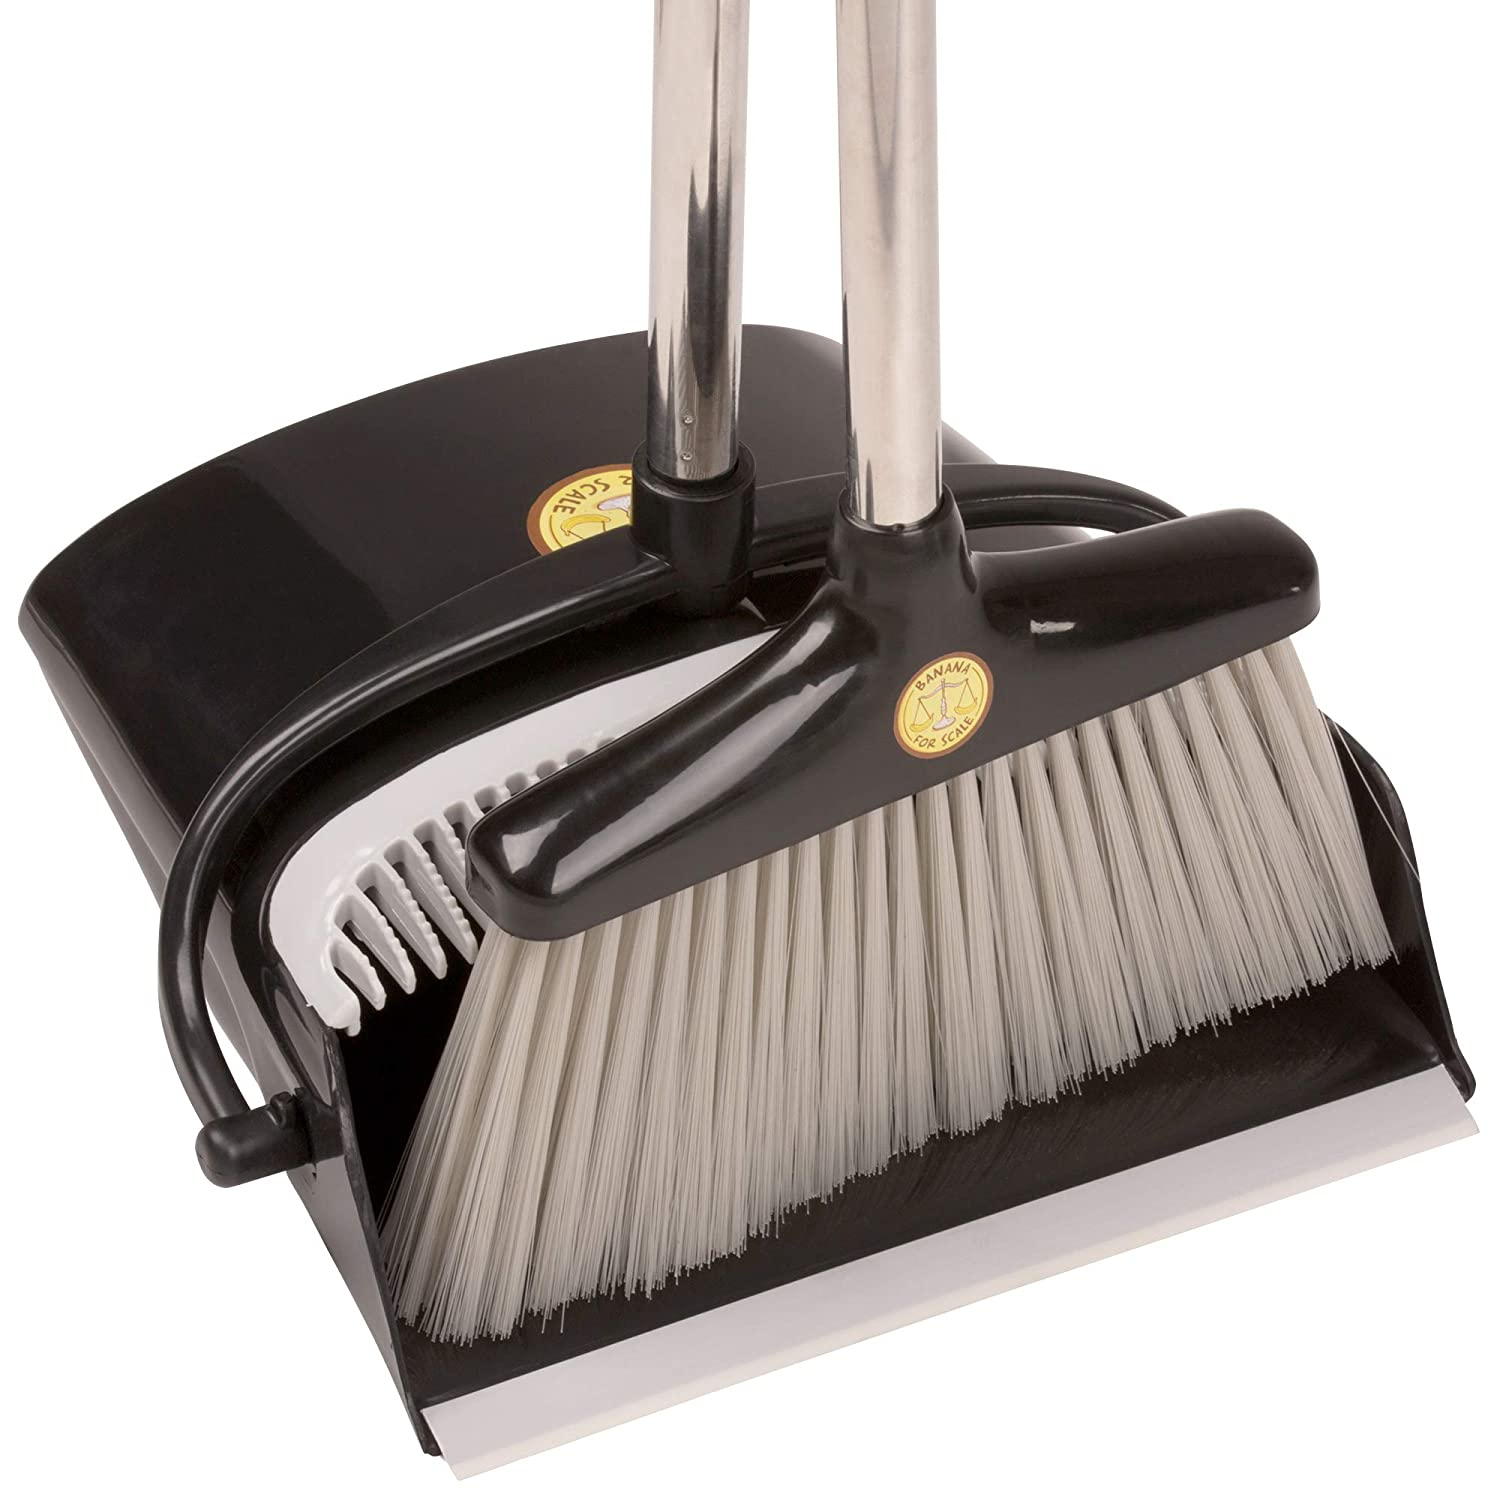 Lobby and Kitchen Floor|No Bending Salon Home Banana For Scale Premium Broom and Dustpan Set|Upright Dustpan Combo Self-Cleaning Bristles|Long Brush Perfect Use For Sweeping Pet Hair Dust in Office